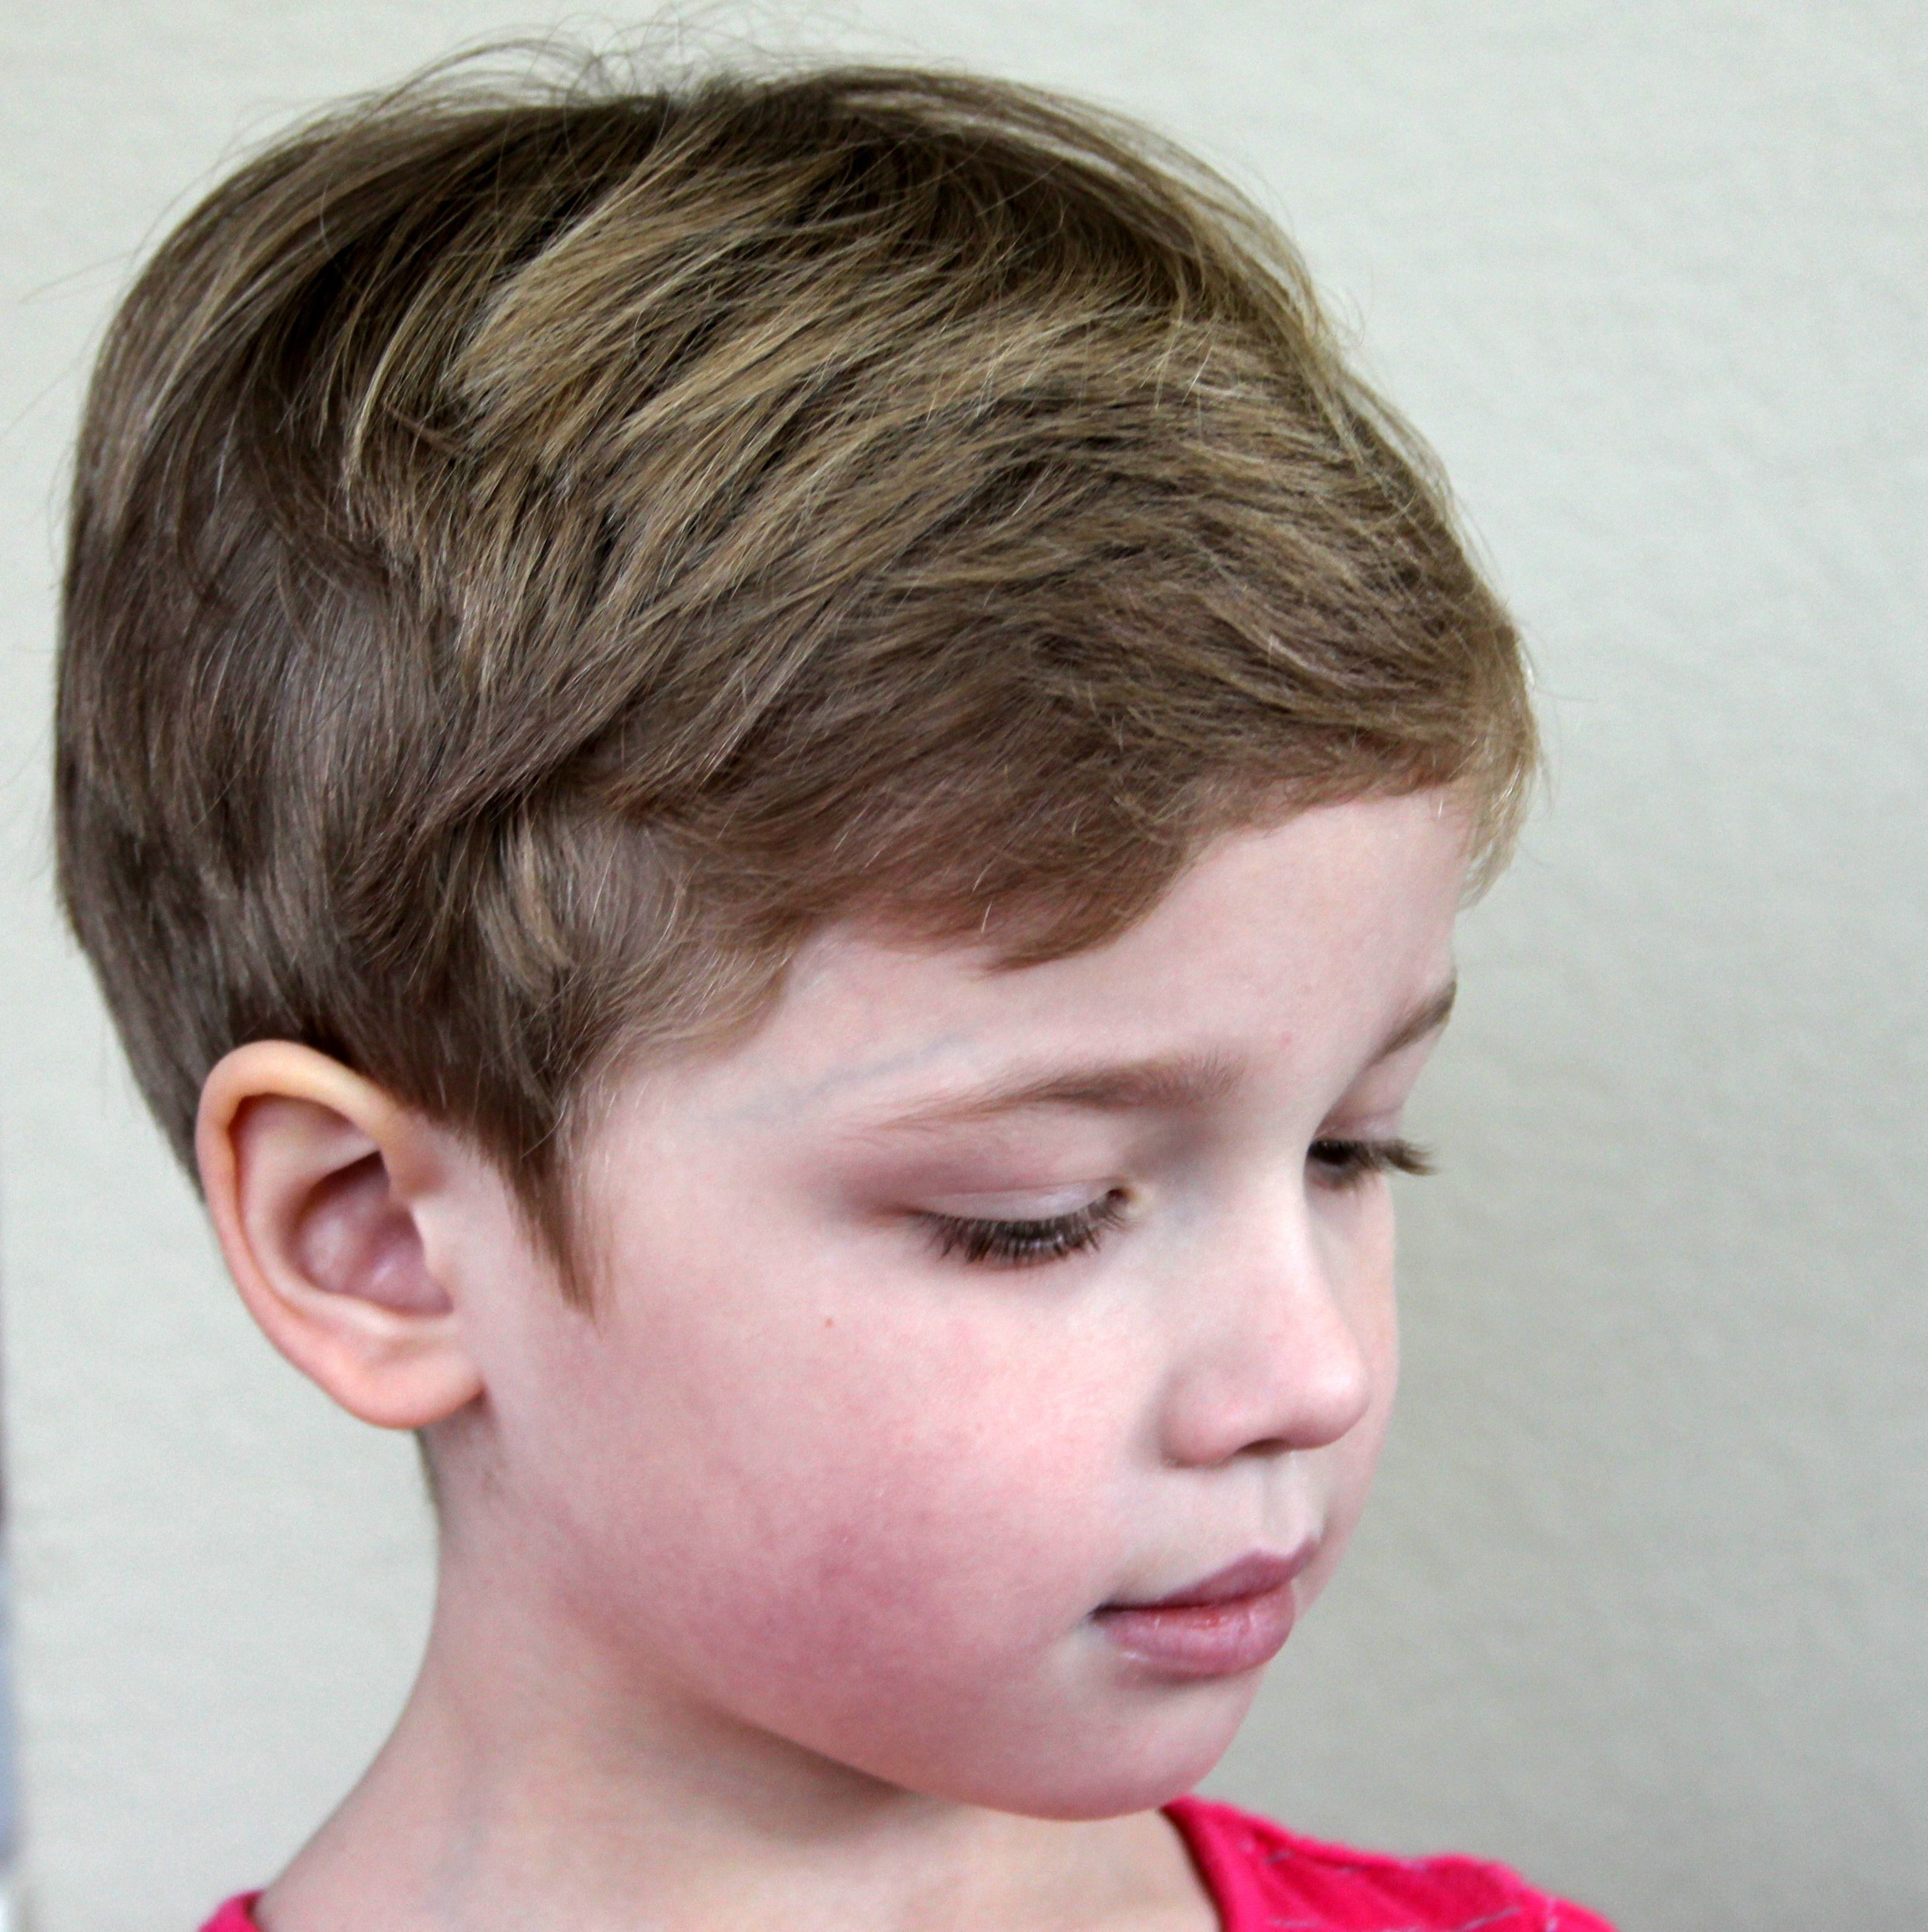 pixie hair on a five year old | pixie cuts for young girls